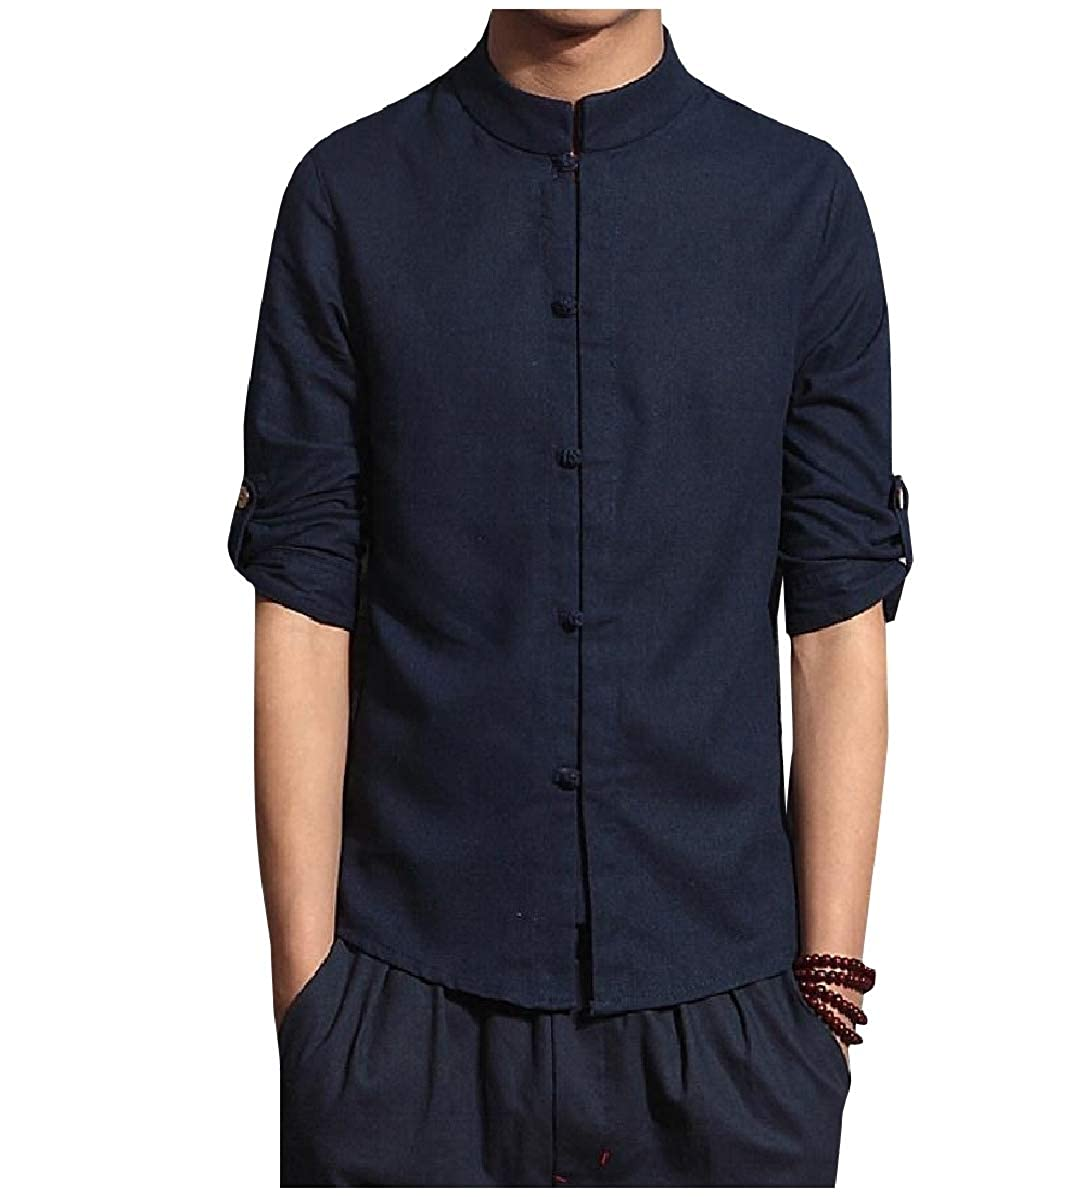 YUNY Mens Chinese Style Linen 3//4 Sleeve Back Cotton Western Shirt Navy Blue M